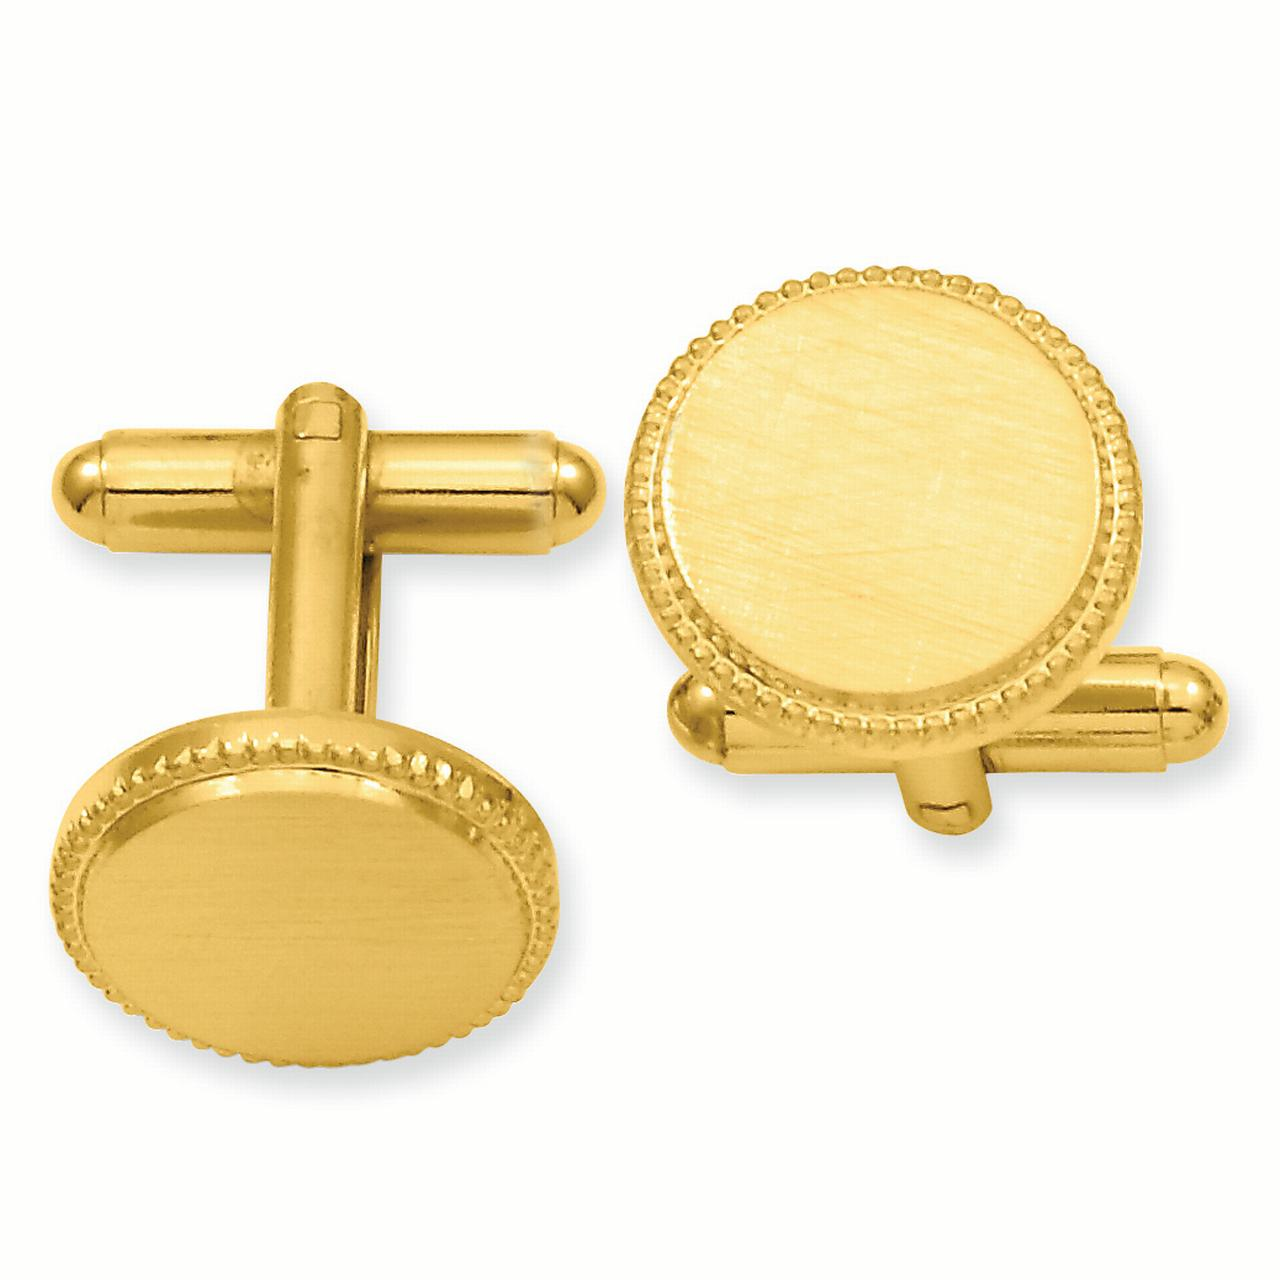 Gold Plated Kelly Waters Florentine Round Beaded Cuff Links Mens Cufflinks Man Link Water